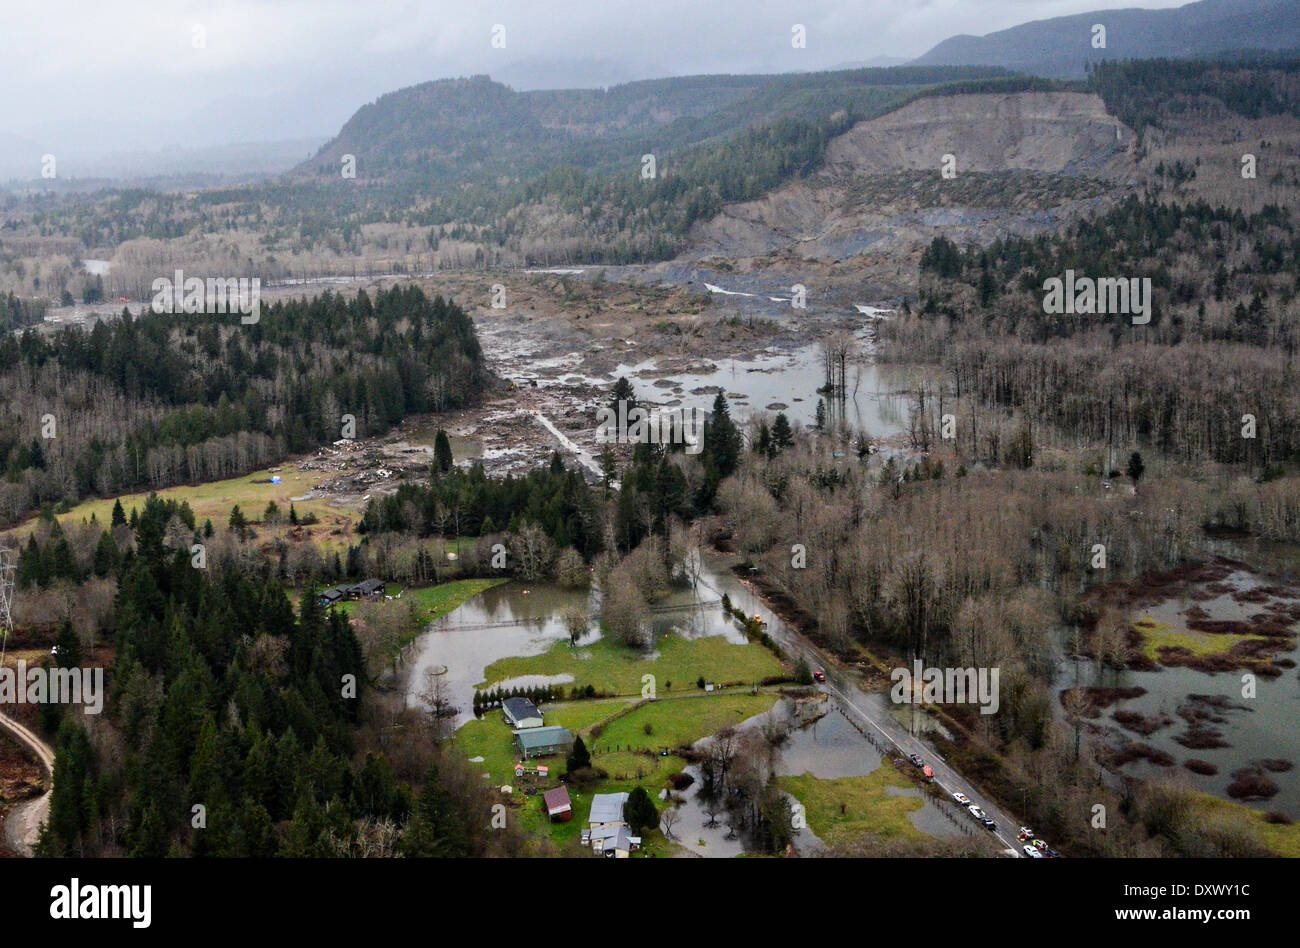 Aerial view of the aftermath of the mudslide more than a week after it occurred along highway 530 killing at least 28 people and destroyed a small riverside village in northwestern Washington state March 31, 2014 in Oso, Washington. - Stock Image